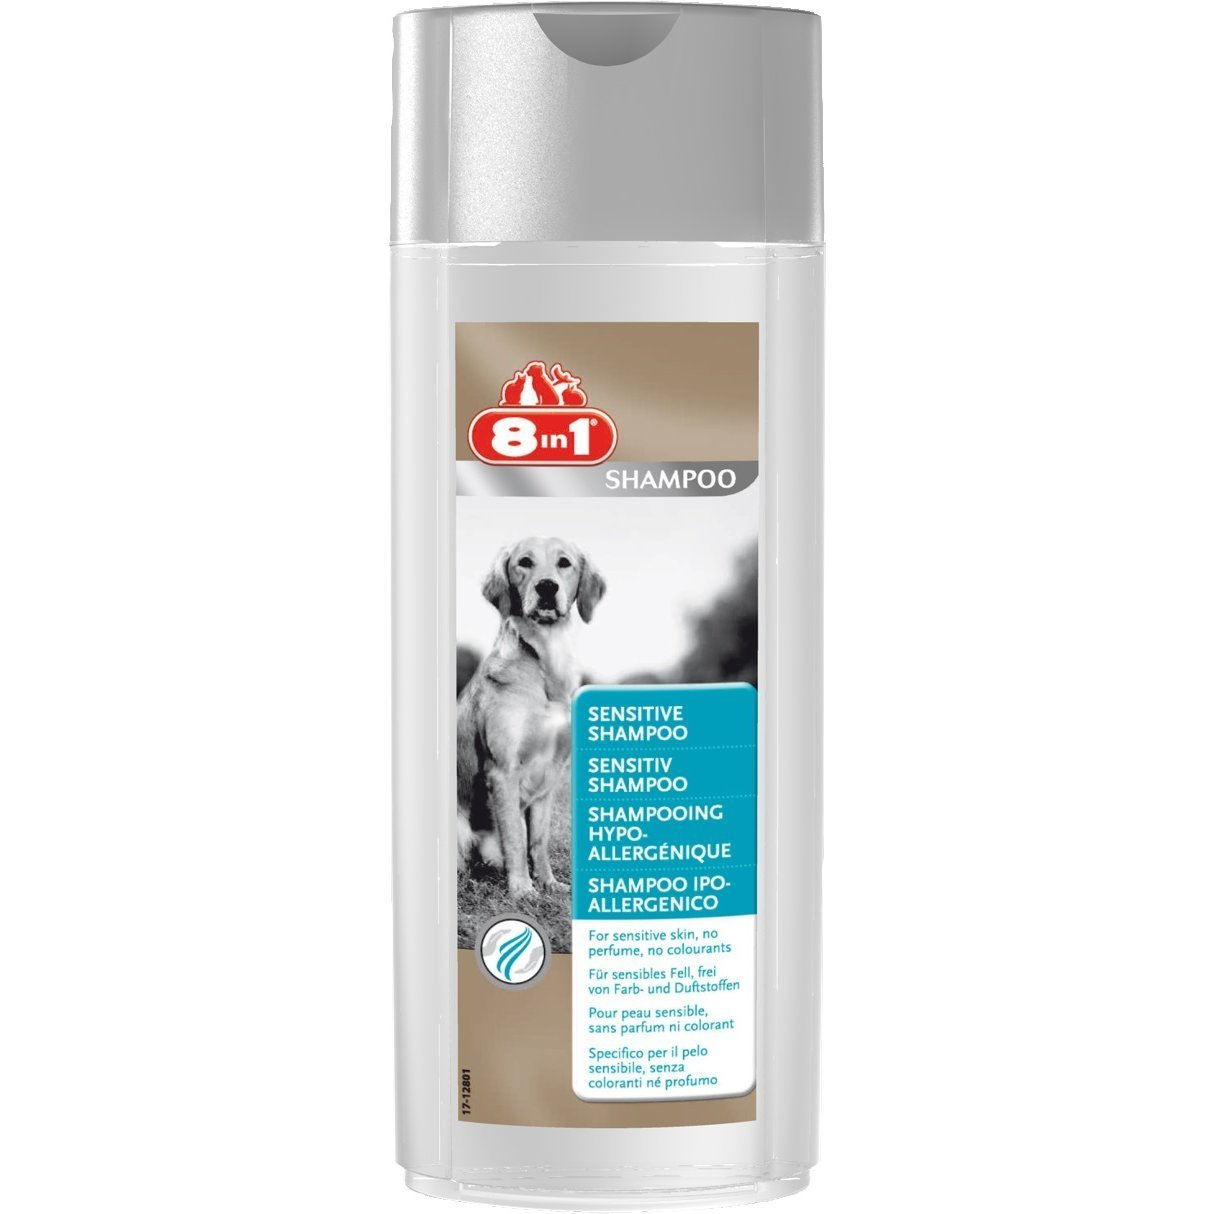 8in1 Hundeshampoo Sensitiv, 250 ml